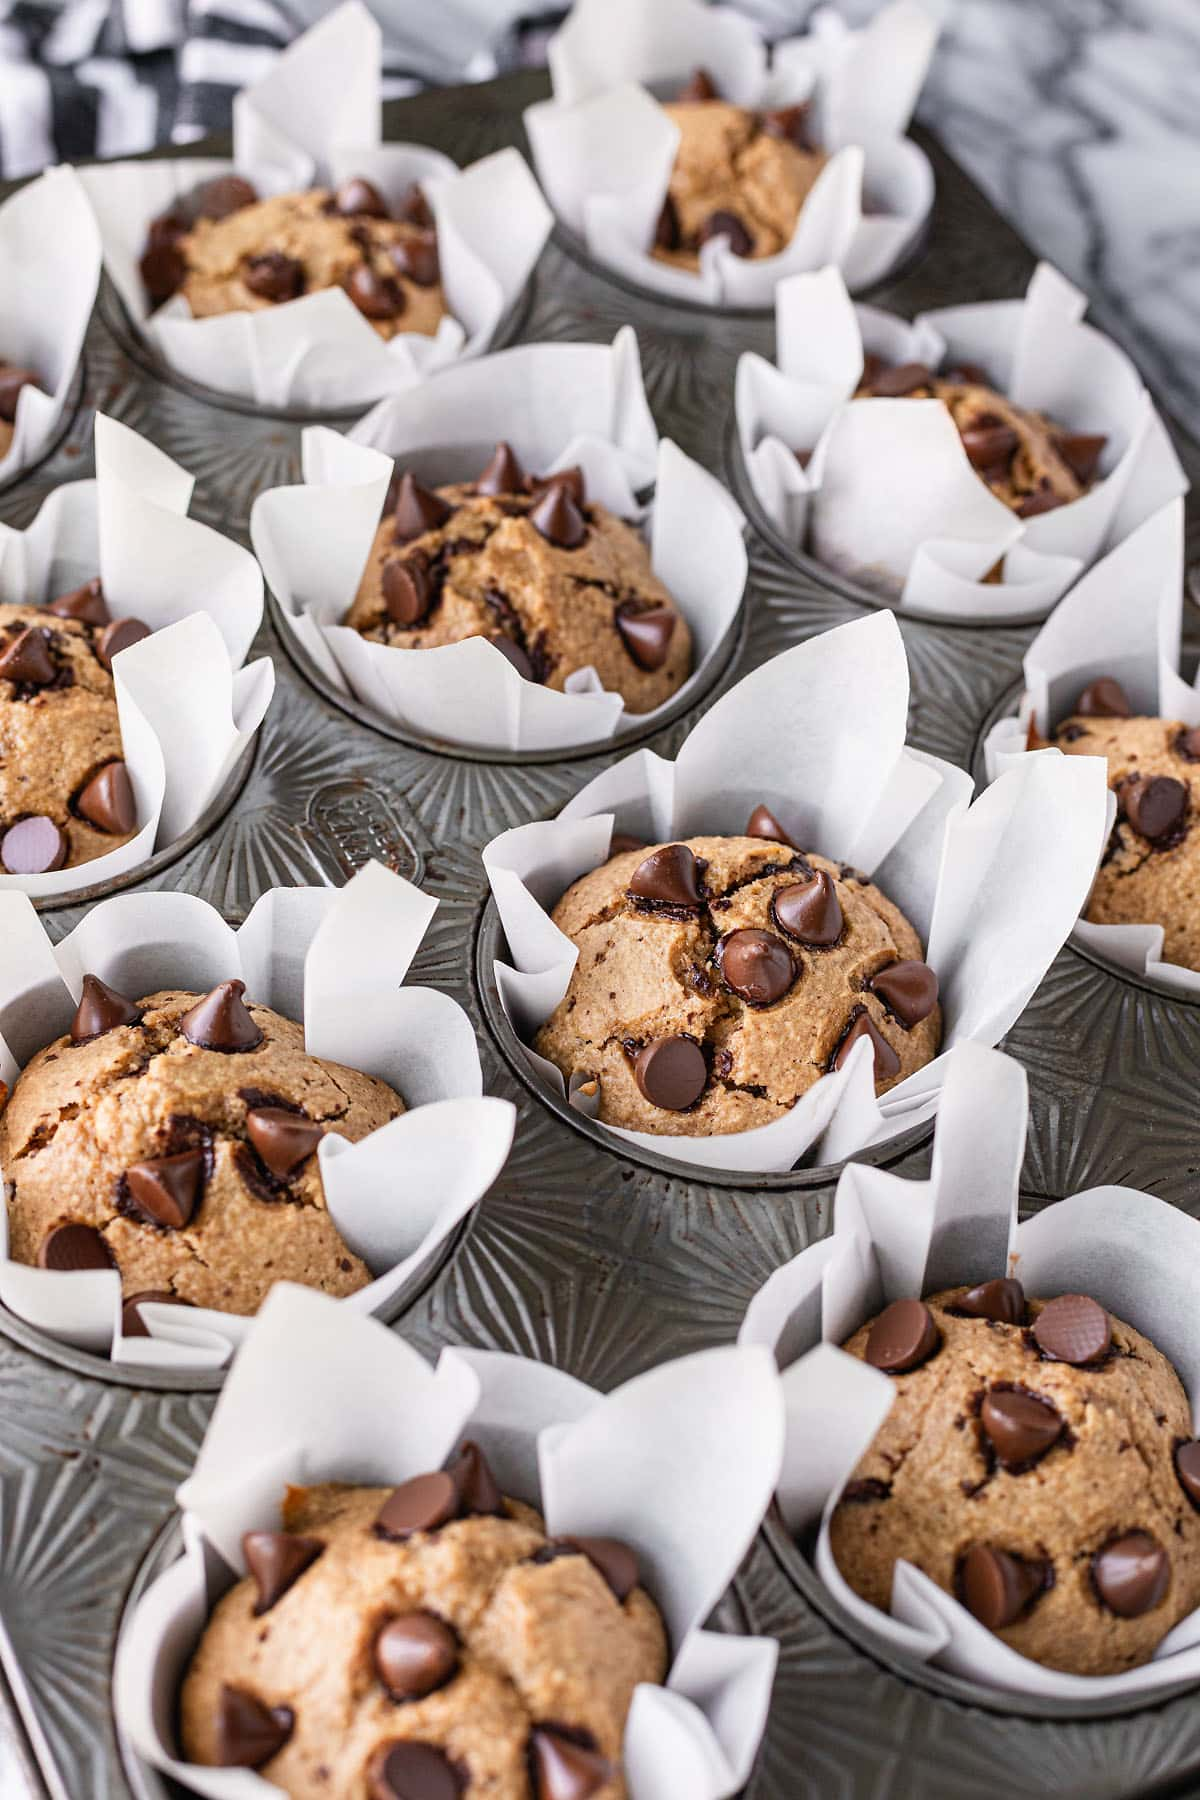 muffins baked in diy cupcake liners made from parchment paper